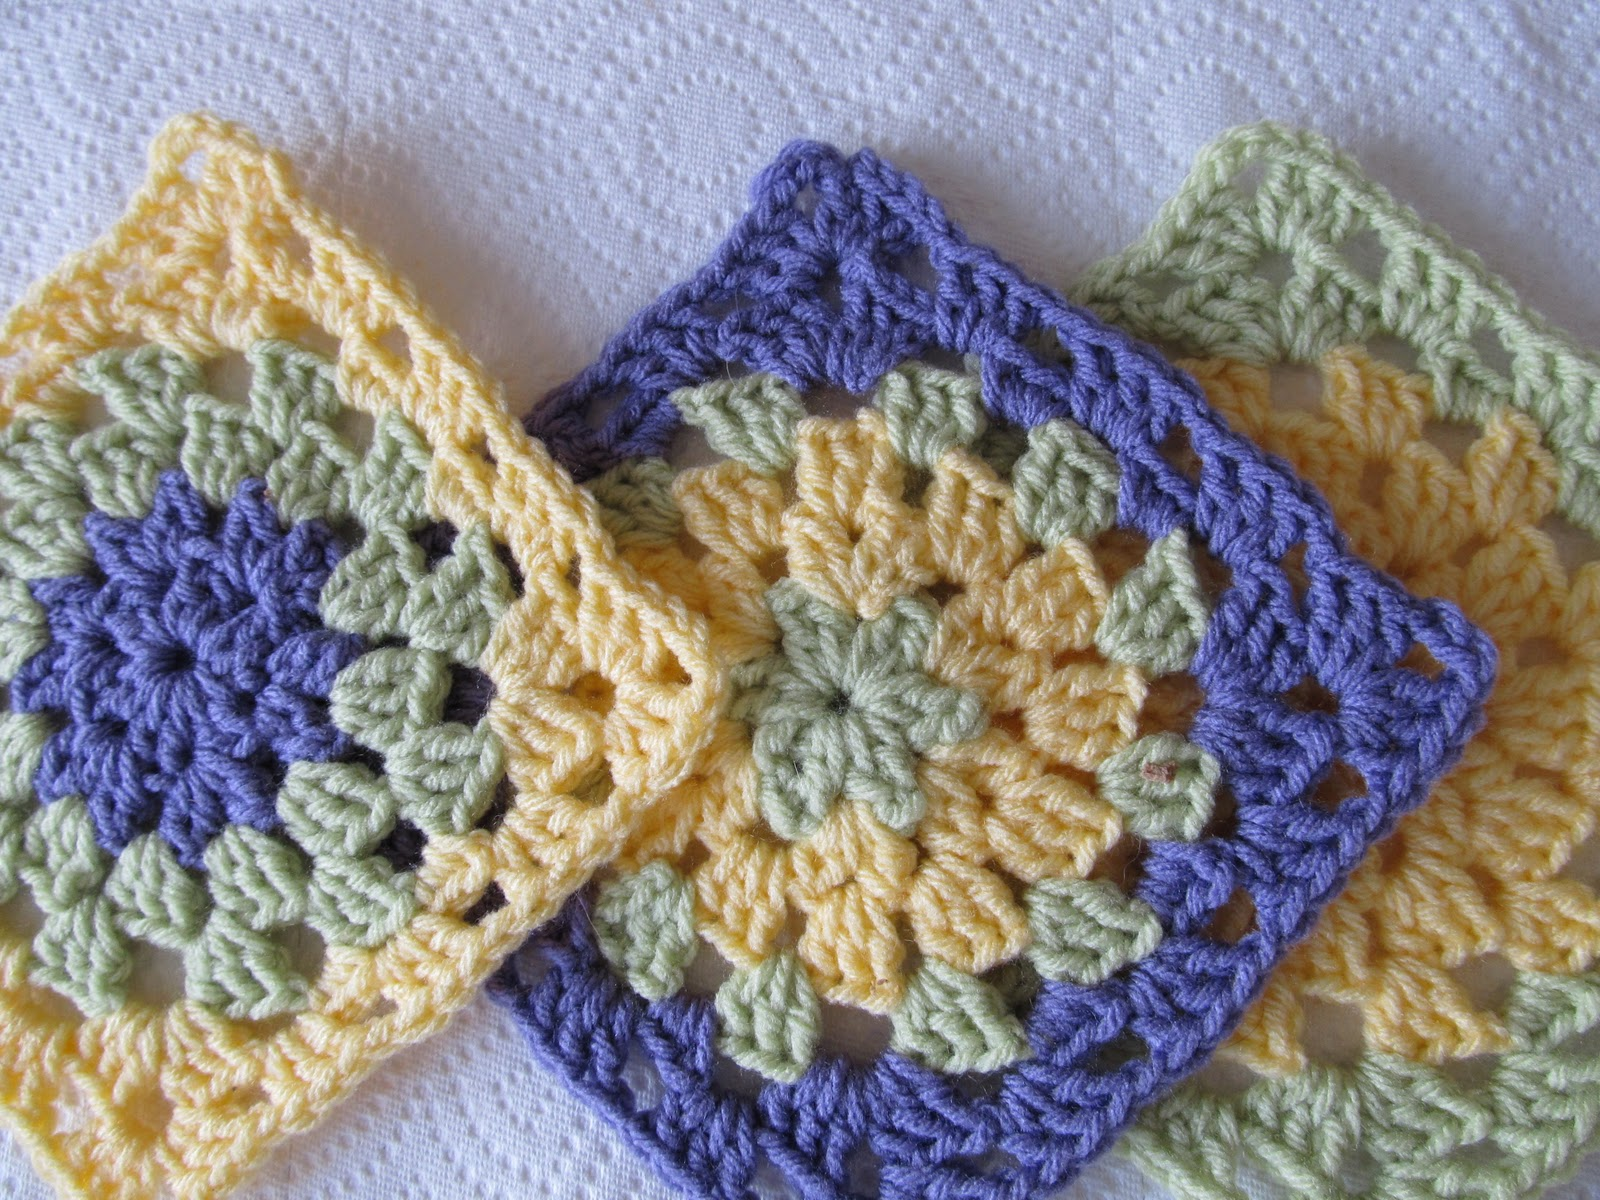 Crochet for Charity | AllFreeCrochet.com